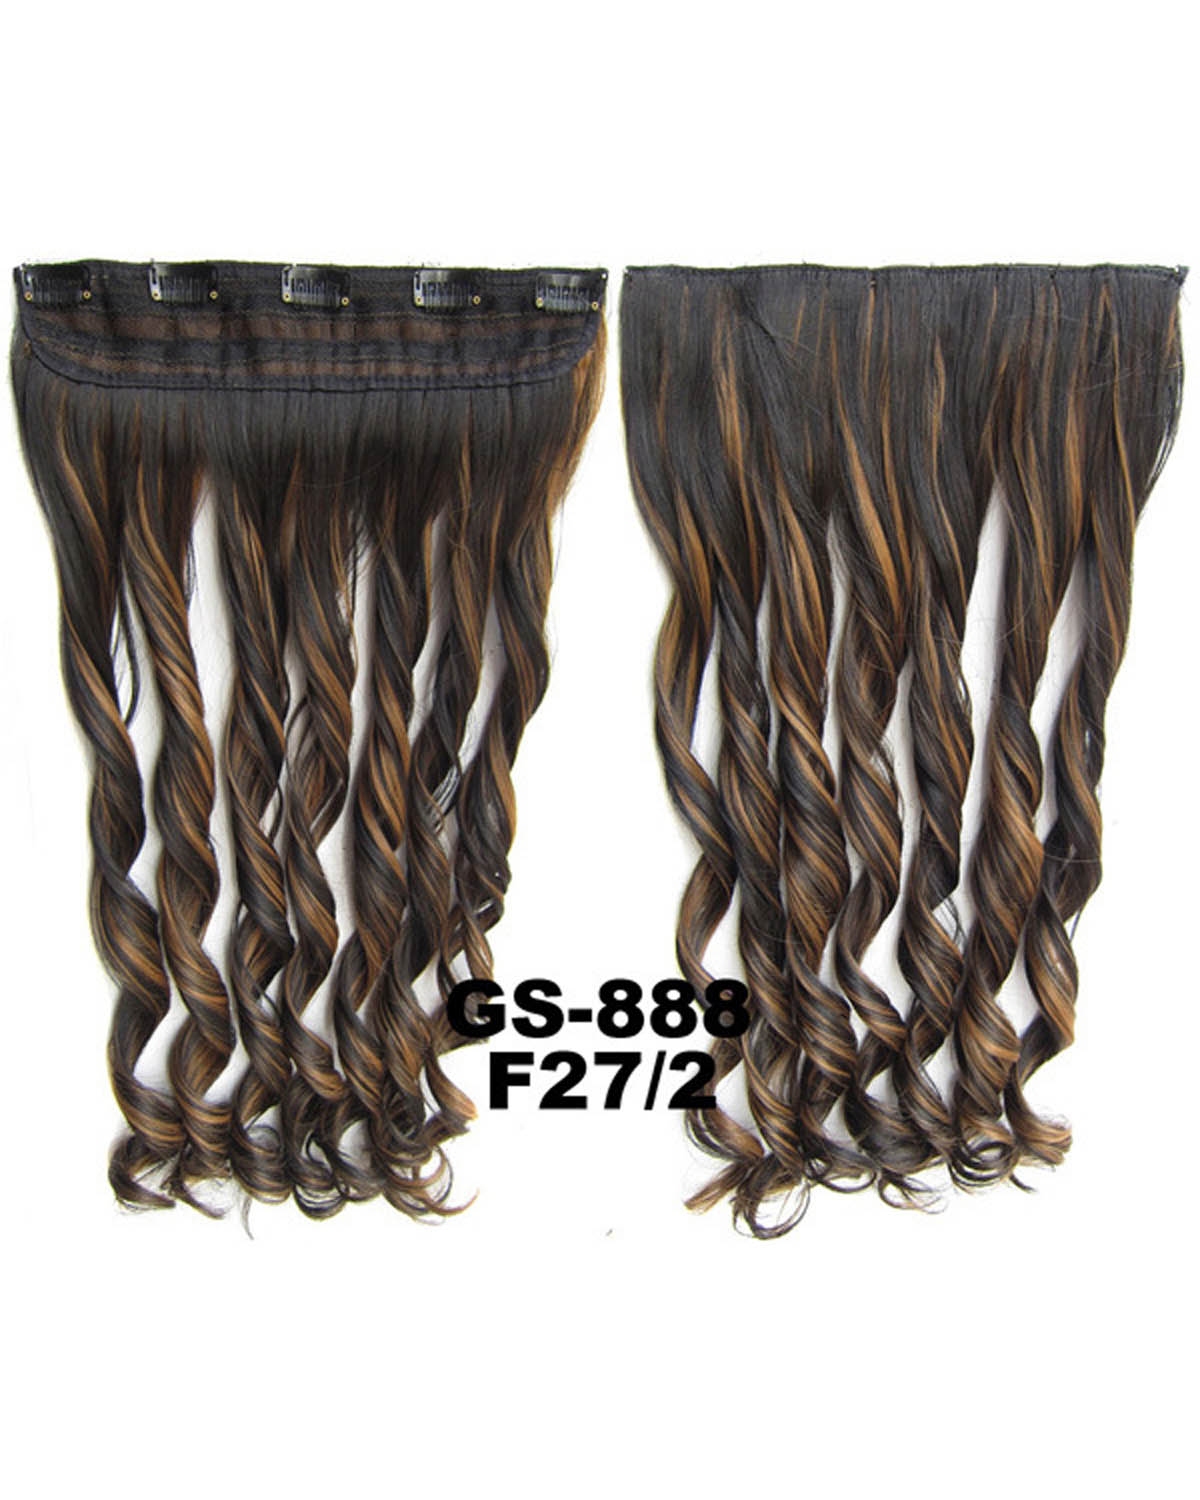 24 Inch Lady Styish Curly Long One Piece 5 Clips Clip in Synthetic Hair Extension  F27/2